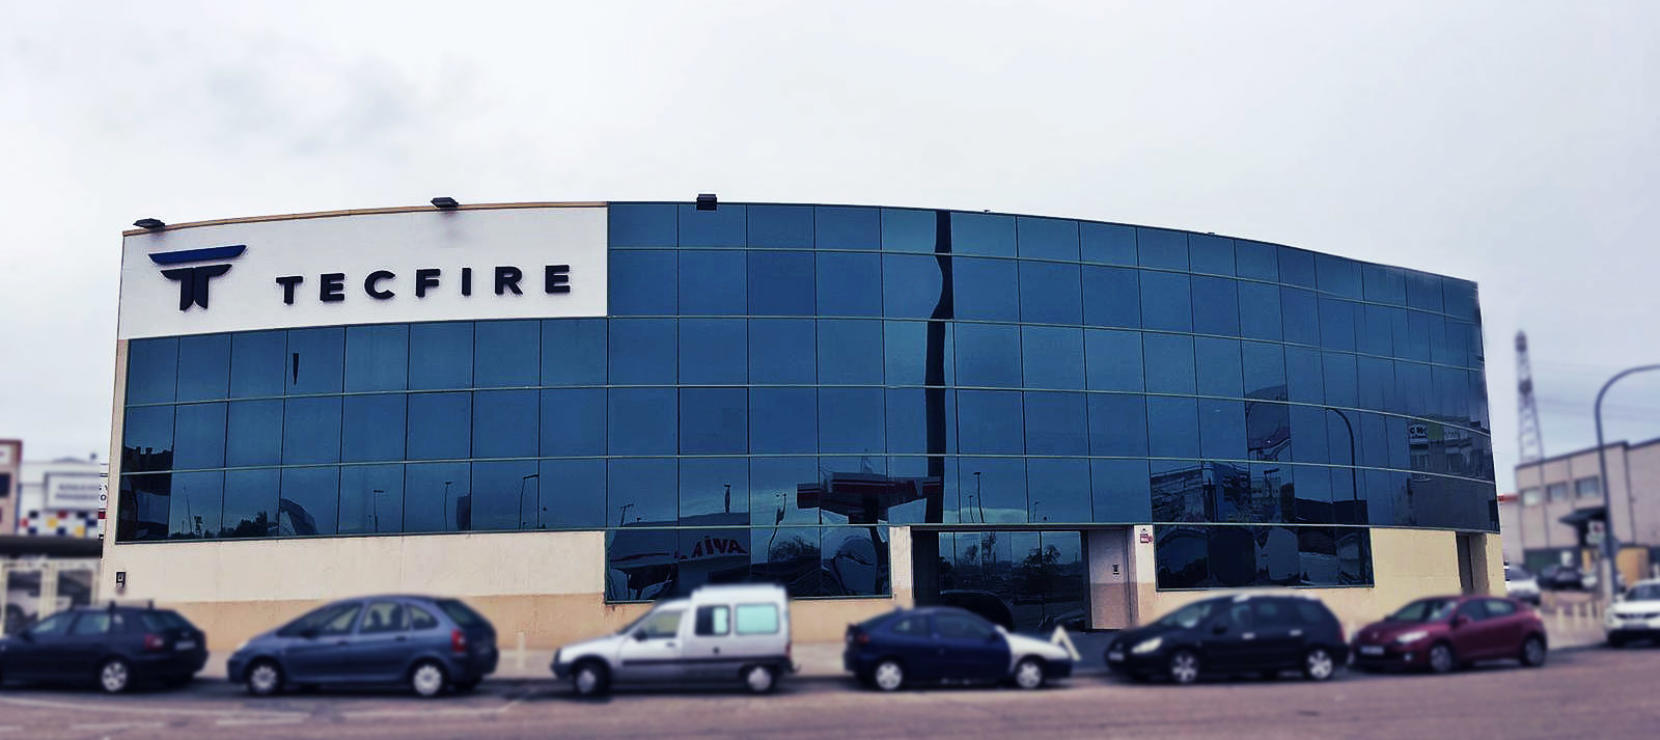 Tecfire's New Spain Factory